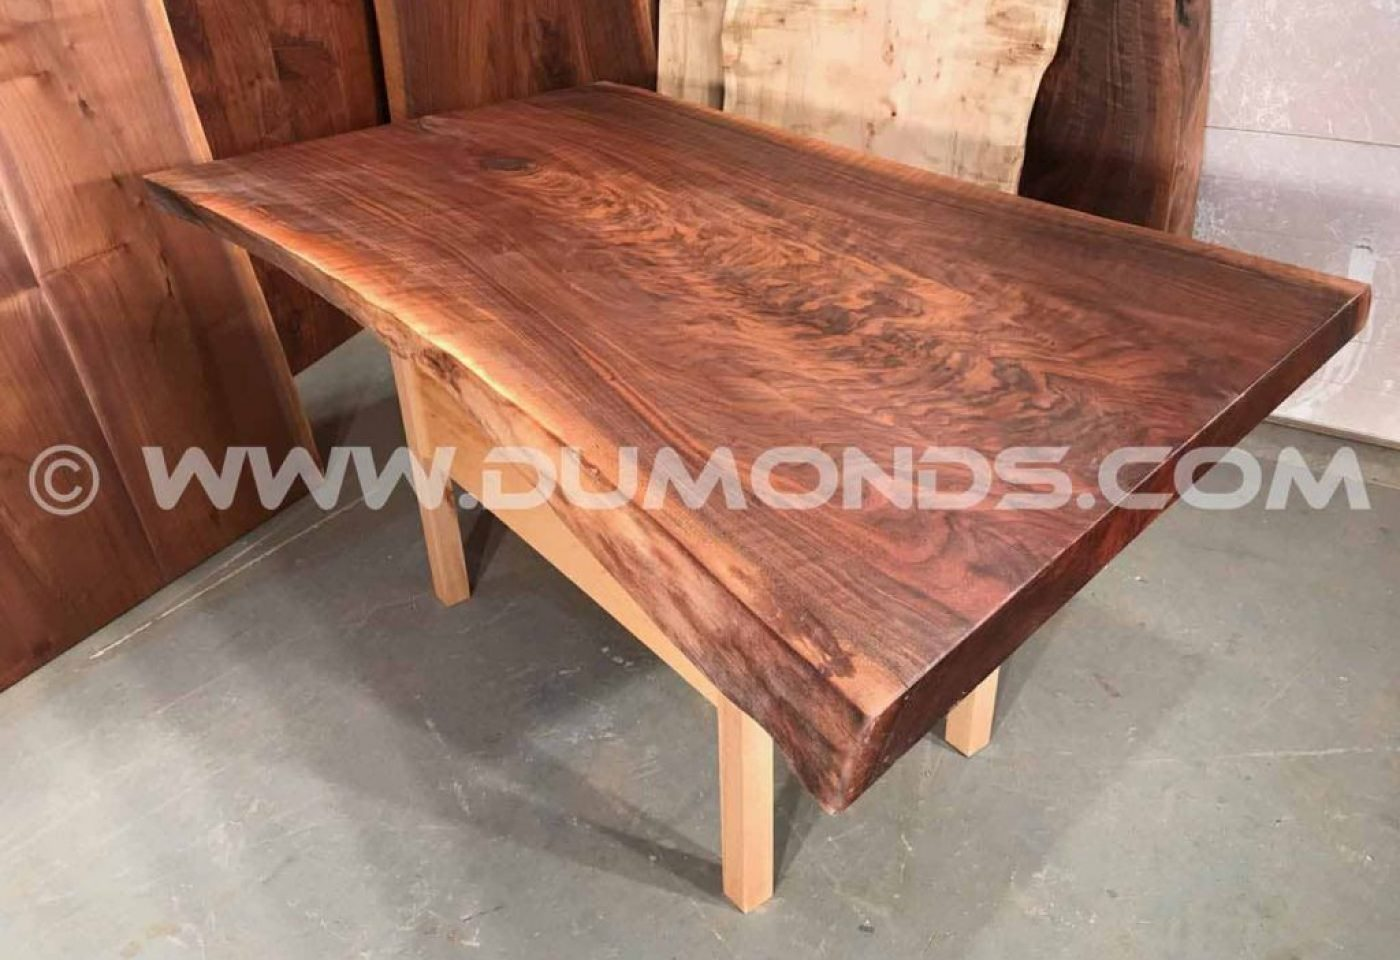 CURLY WALNUT TABLE WITH WALNUT PEDESTAL BASE